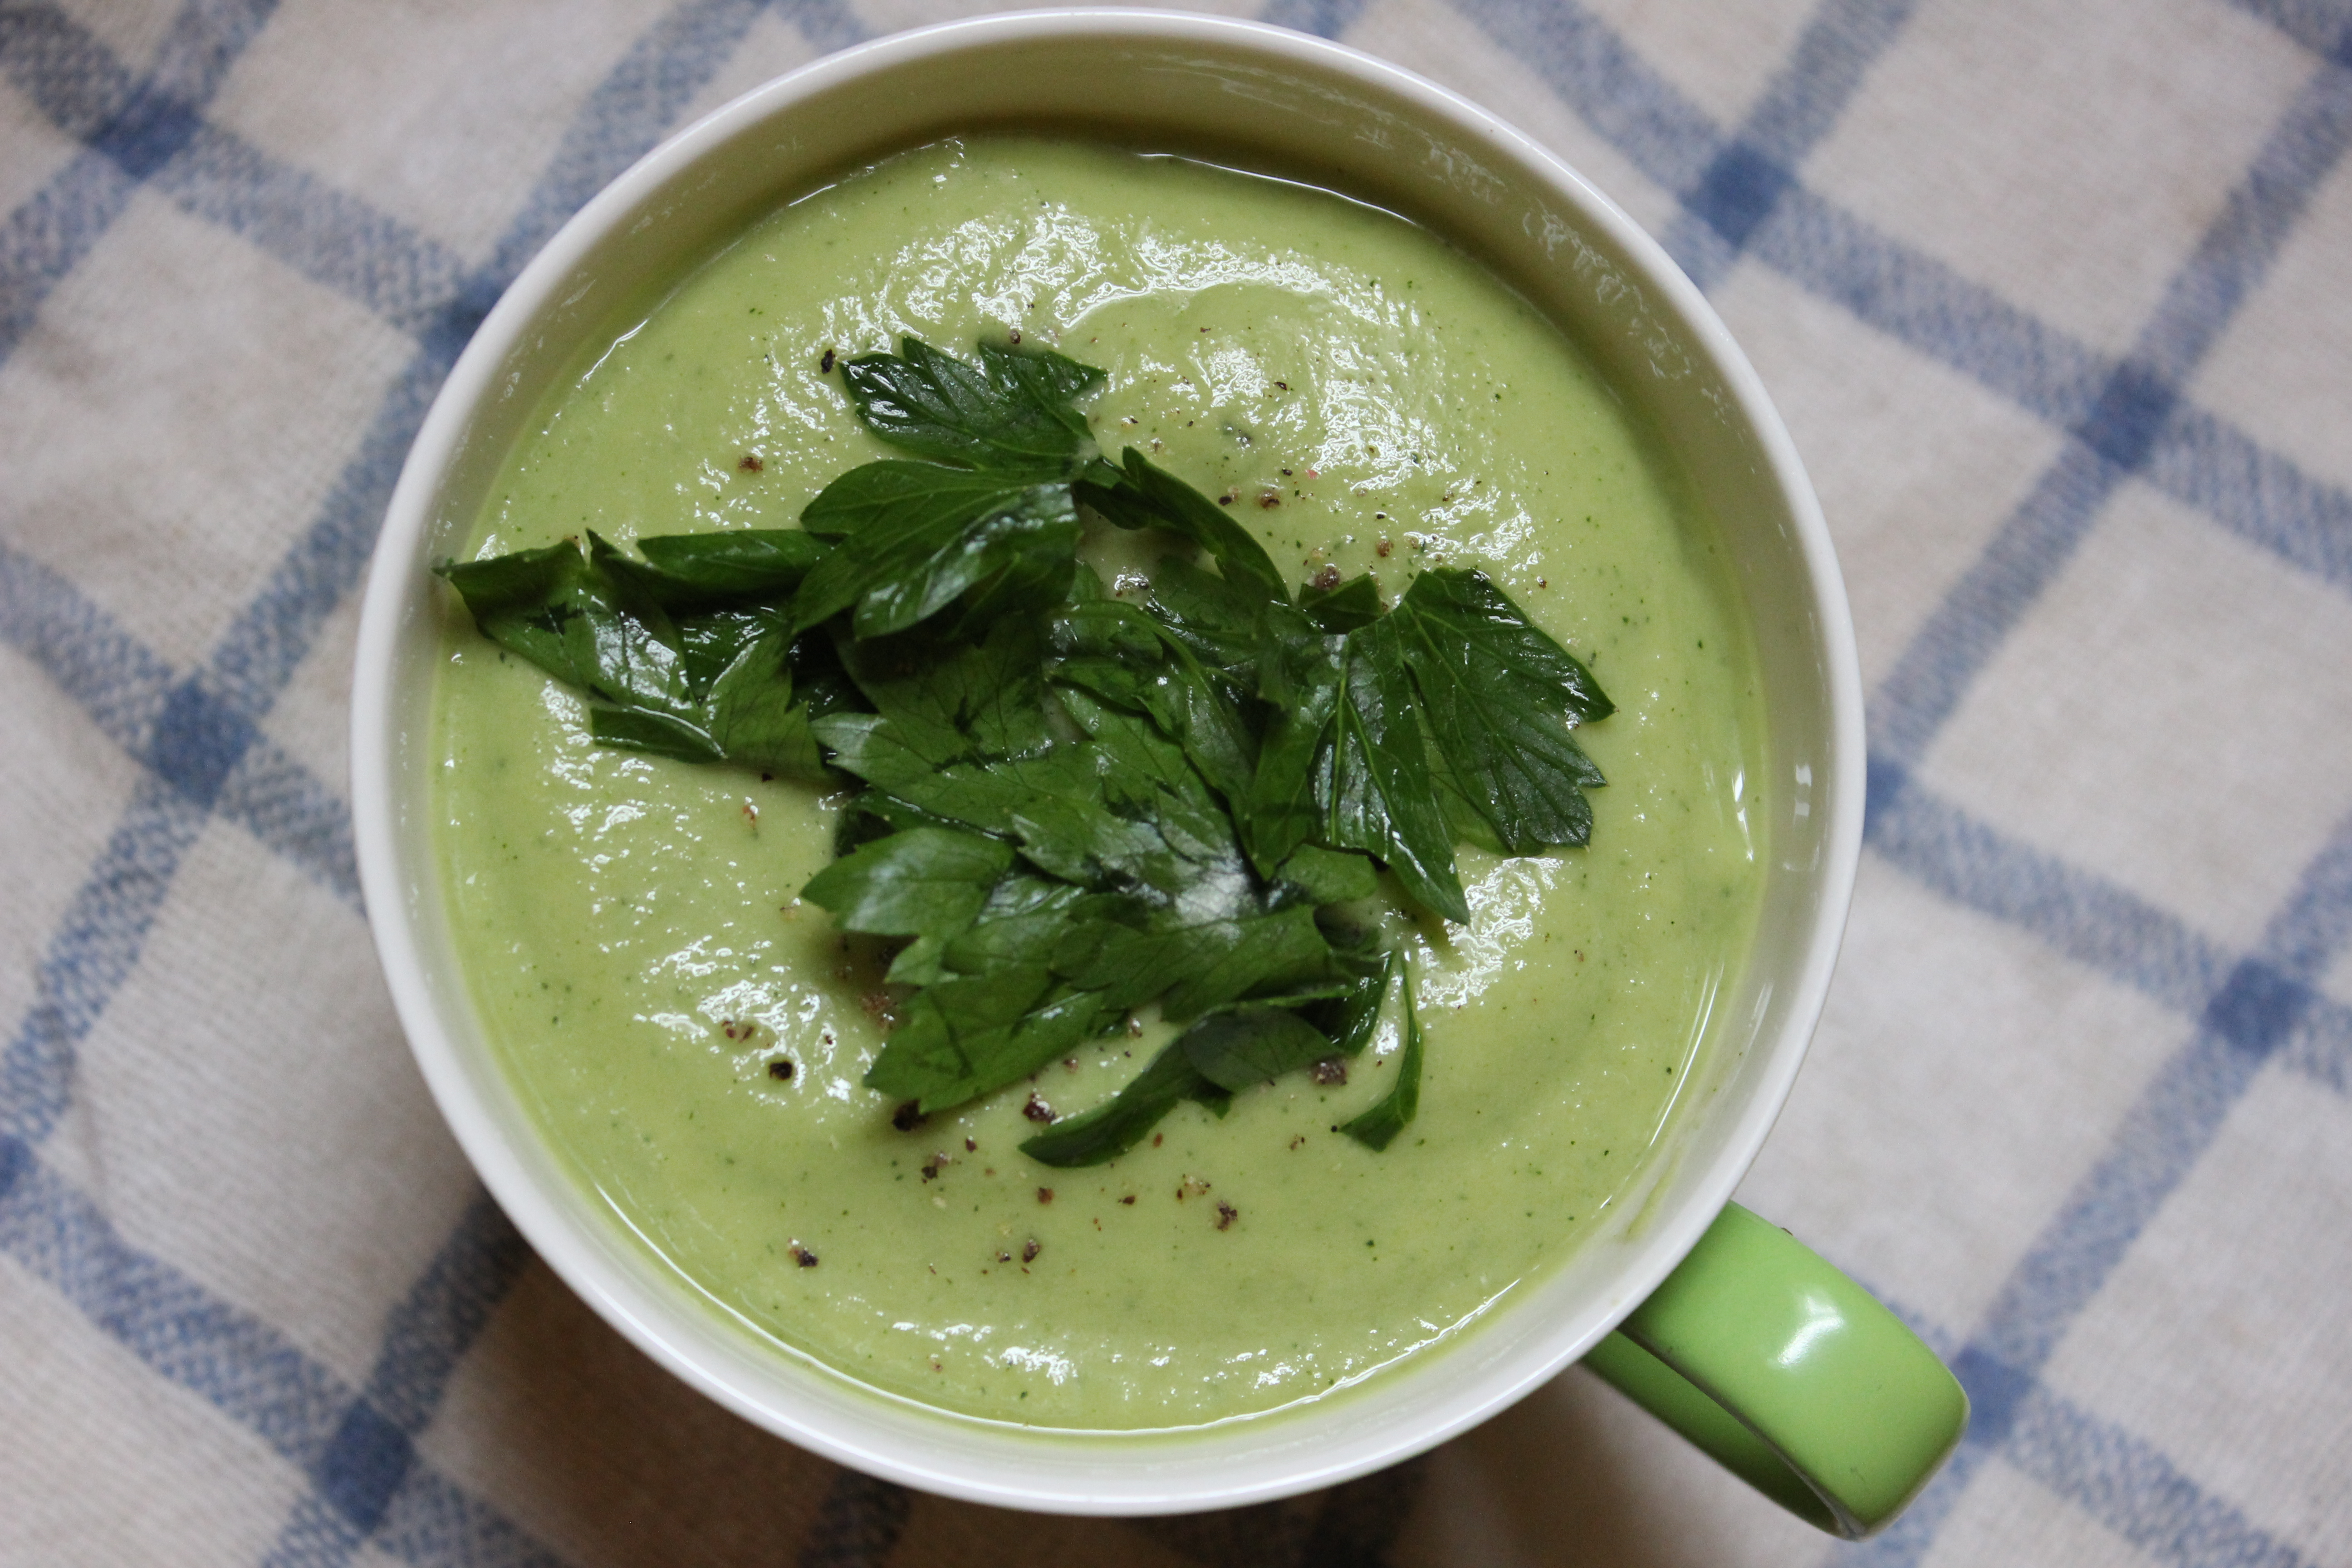 Chilled Zucchini Soup For Sticky Summer Days